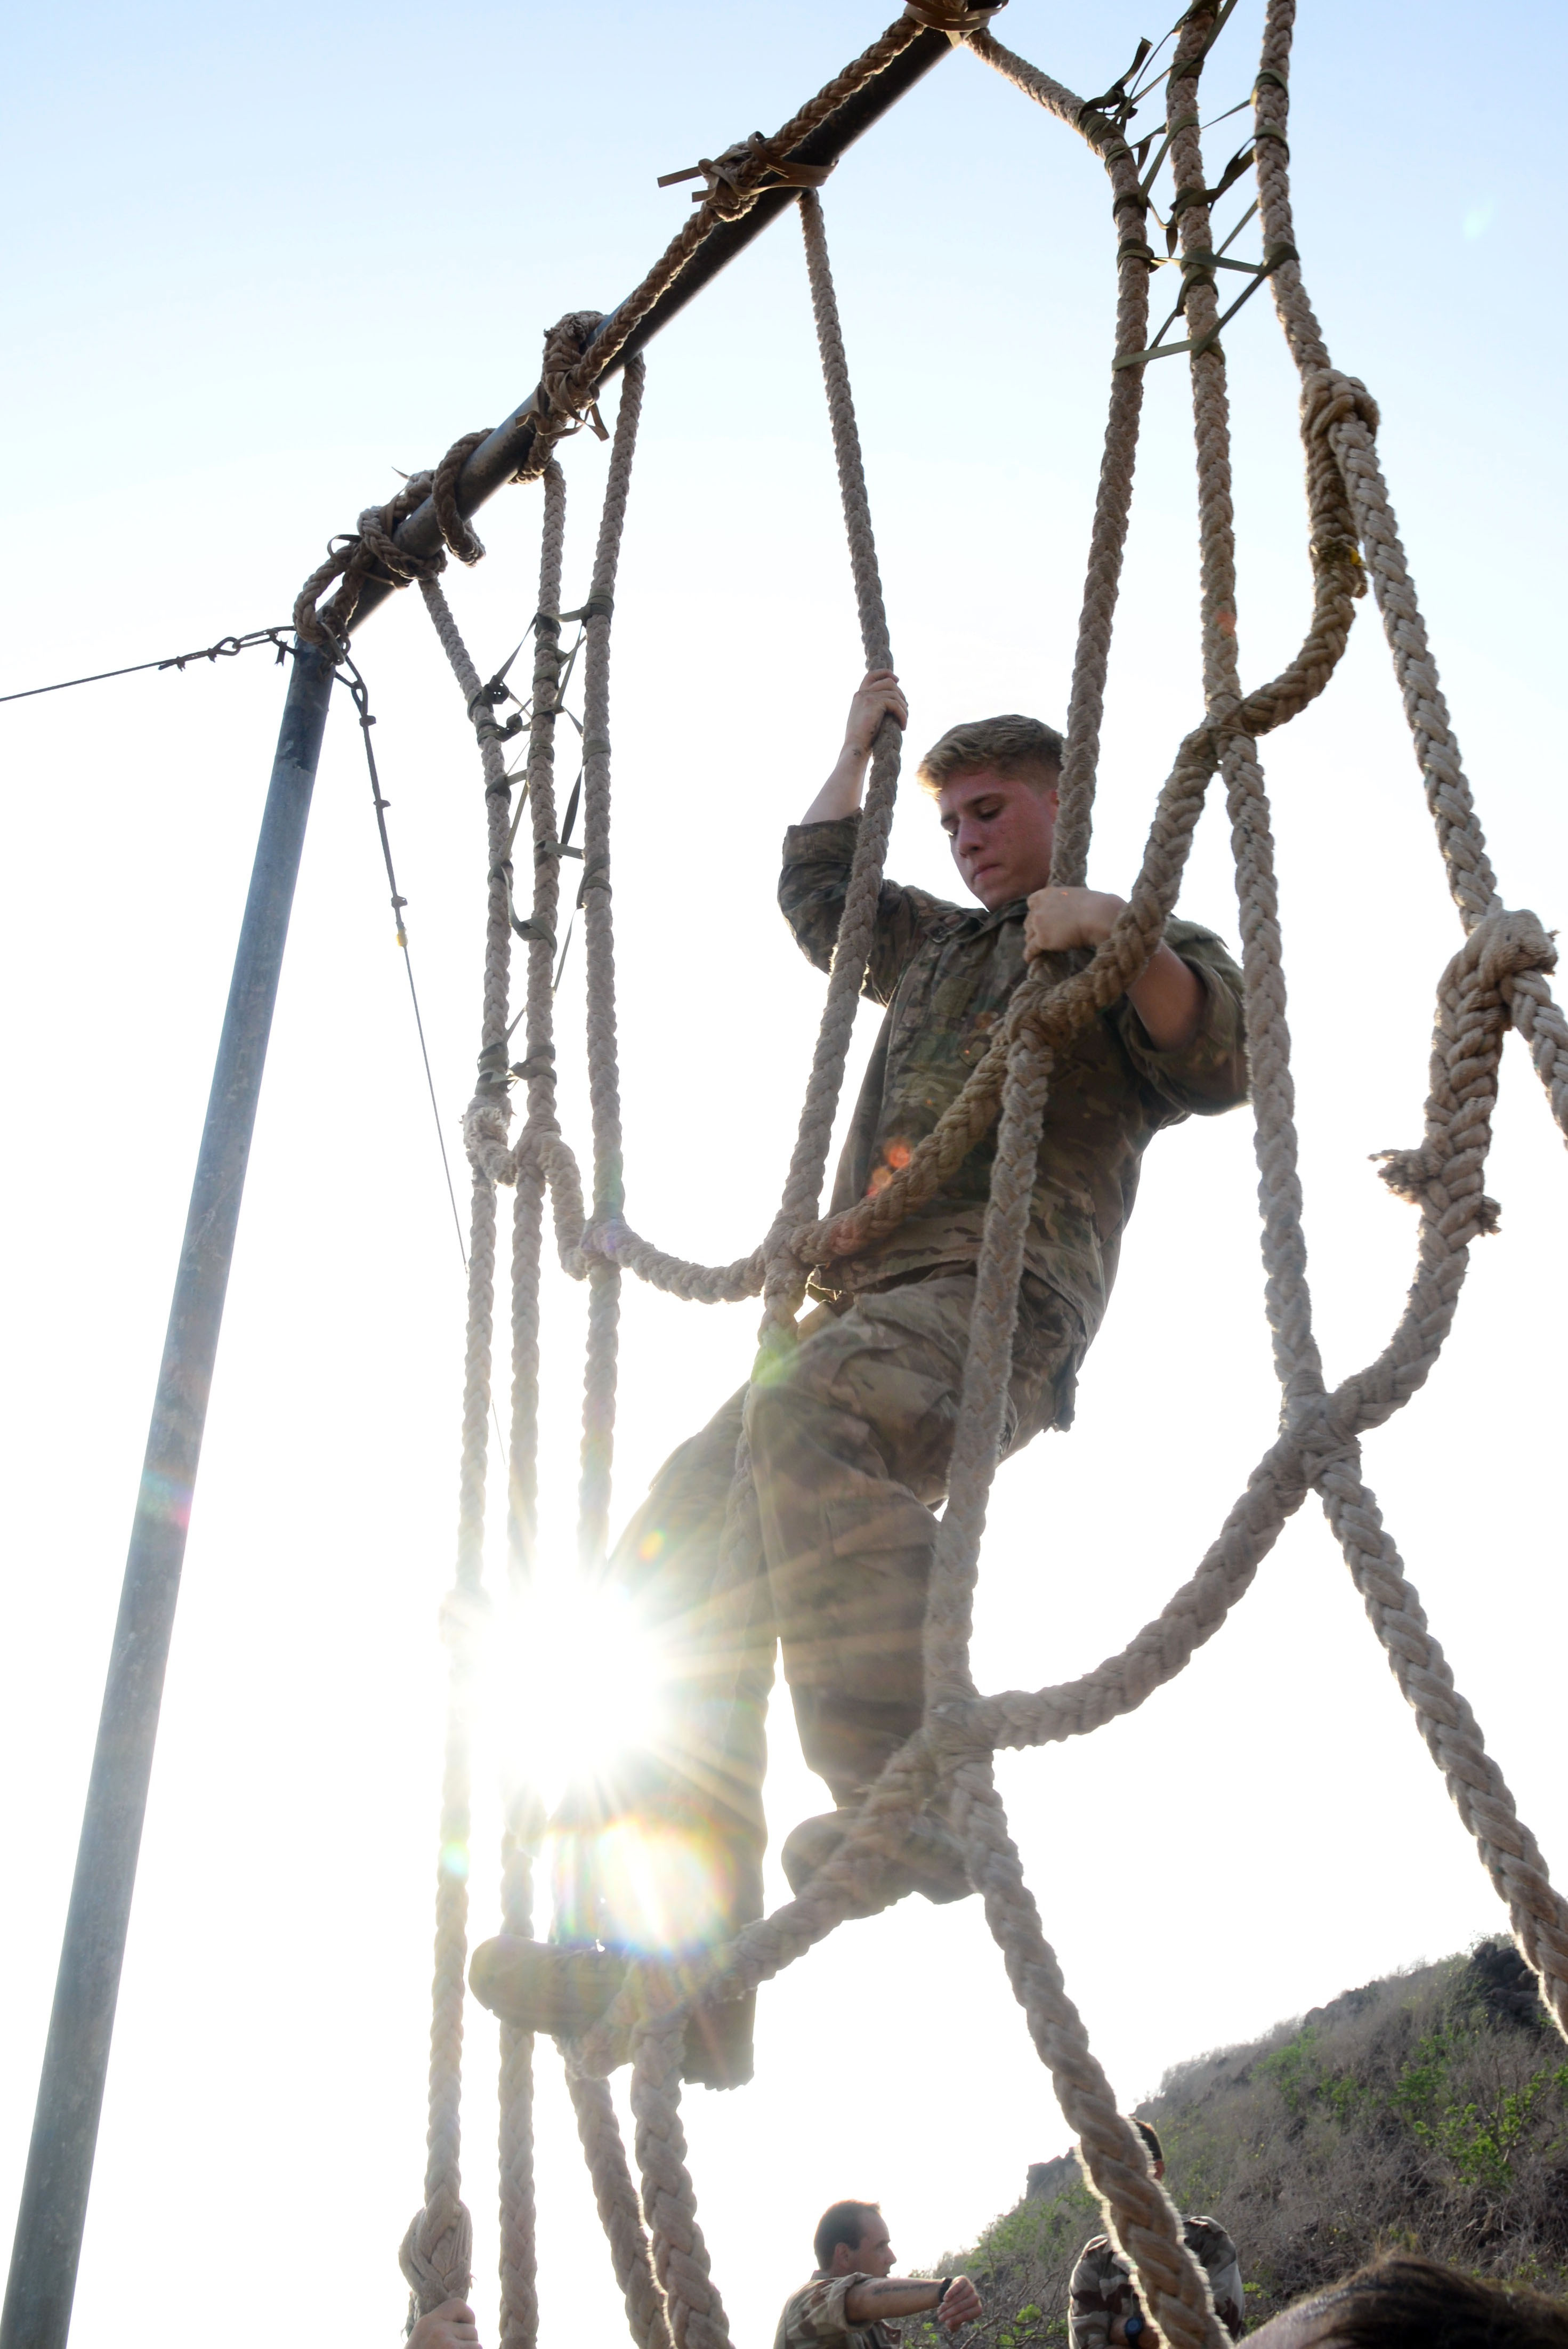 U.S. Army Spc. Steven Saurimayo, 2nd Battalion, 124th Infantry Regiment, climbs a rope obstacle during the French Desert Survival Course May 6, 2016, at Arta Plage, Djibouti. The U.S. forces were required to complete the obstacle course, and then perform the same course in reverse while carrying a tire that could not make contact with the ground. (U.S. Air Force photo by Senior Airman Benjamin Raughton/Released)